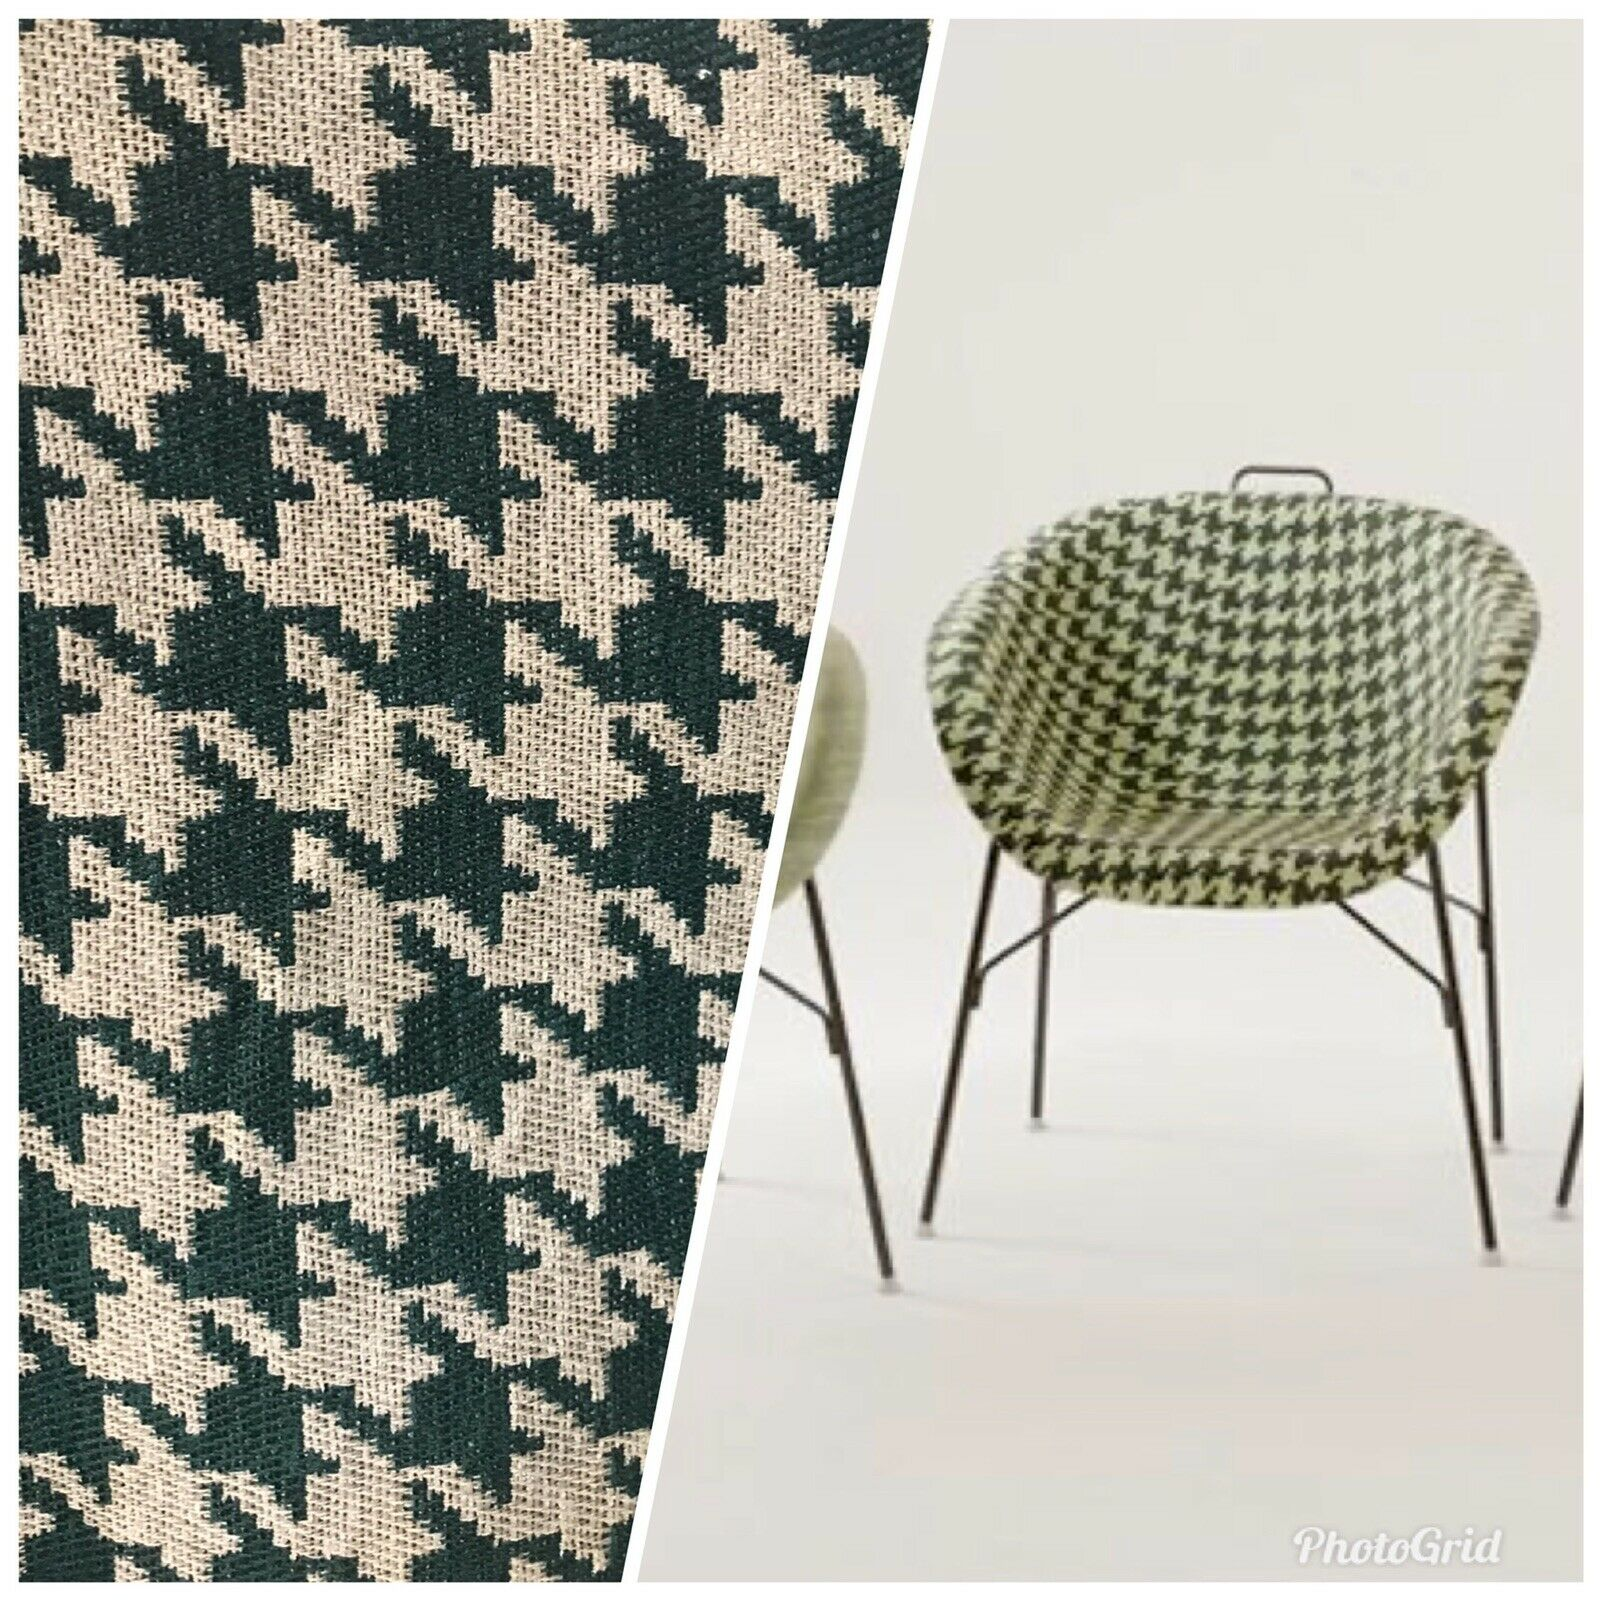 NEW Designer Upholstery Oversized Houndstooth Pattern Fabric - Green & Natural